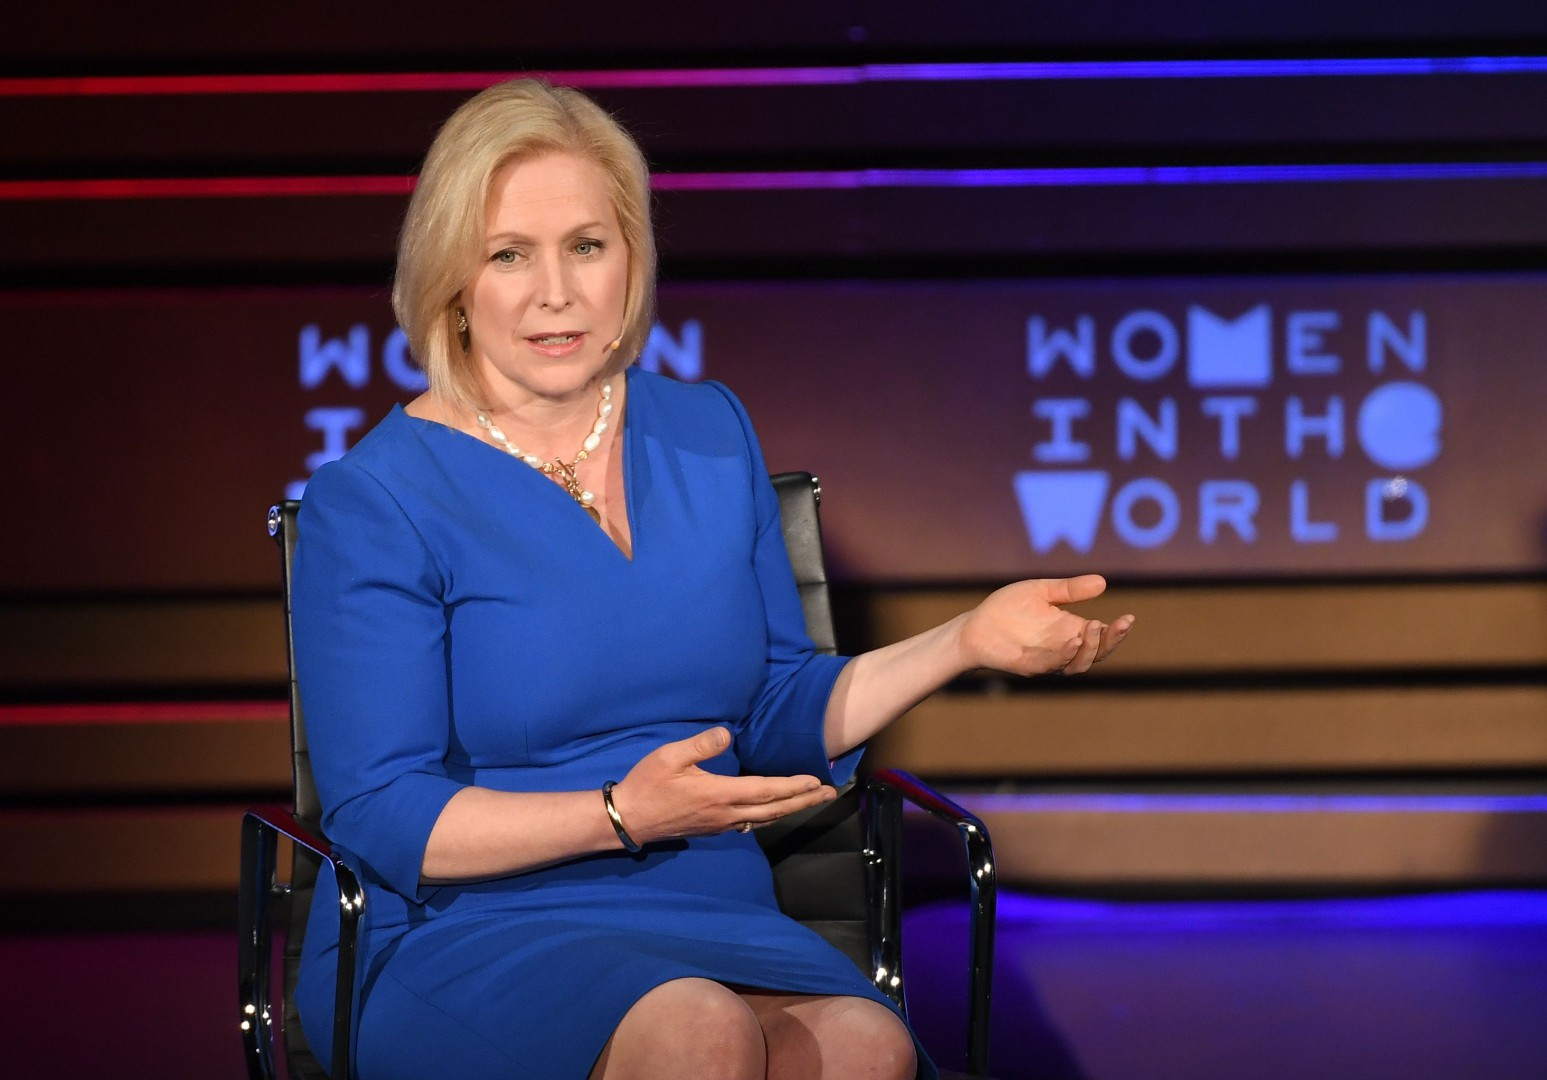 (FILES) In this file photo taken on April 13, 2018 US Senator Kirsten Gillibrand (D-NY) speaks onstage at the Women of the World Summit in New York City. - Democratic US Senator Kirsten Gillibrand, an outspoken Donald Trump critic and champion of women's issues including the #MeToo movement, announced on January 15, 2019 that she is running for president. (Photo by ANGELA WEISS / AFP)